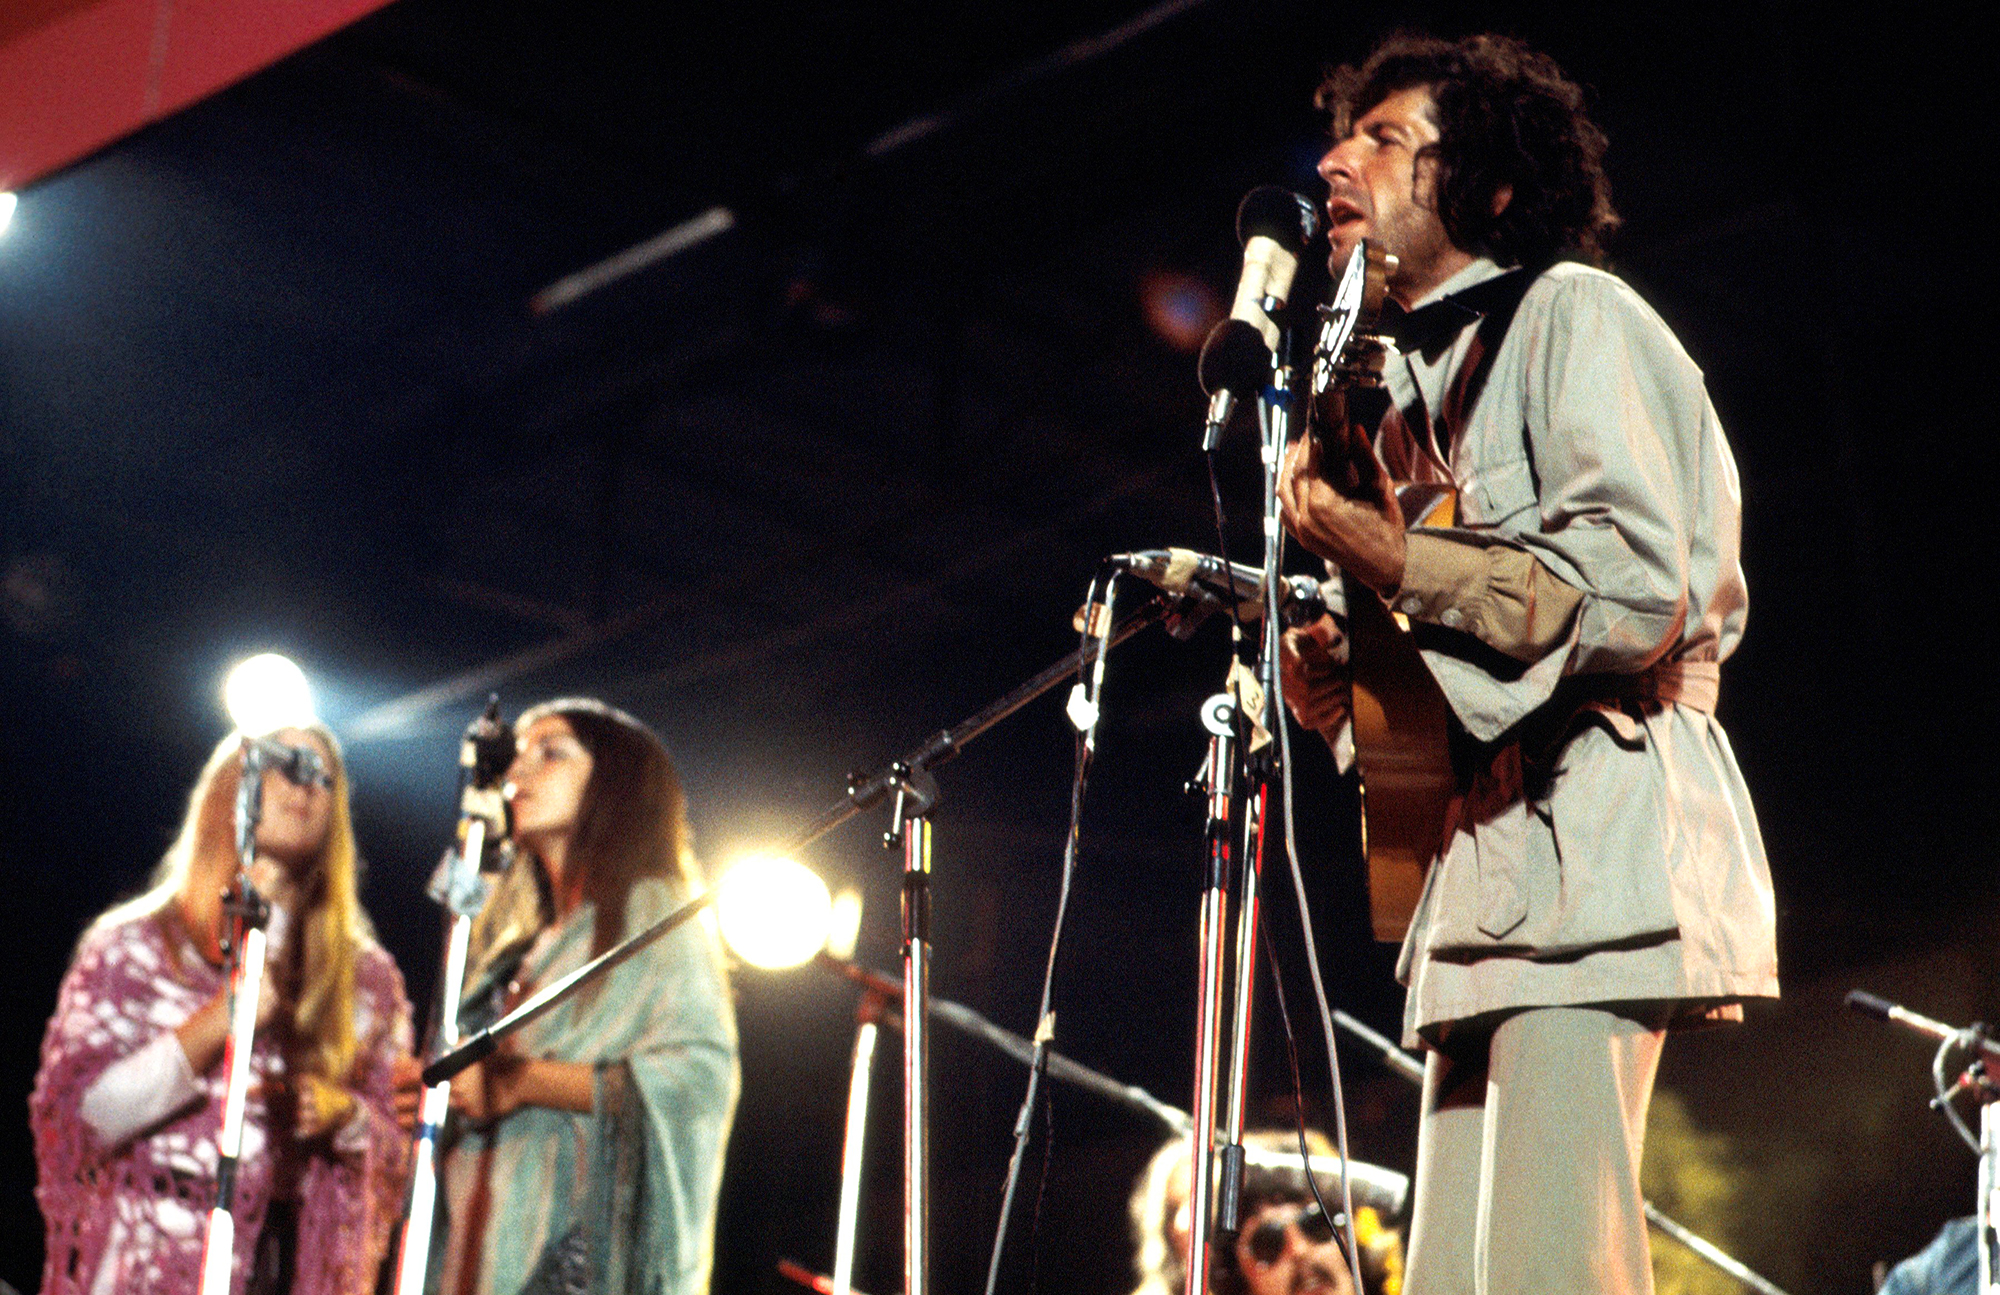 Leonard Cohen performs at the Isle Of Wight Festival, on Aug. 30 1970.